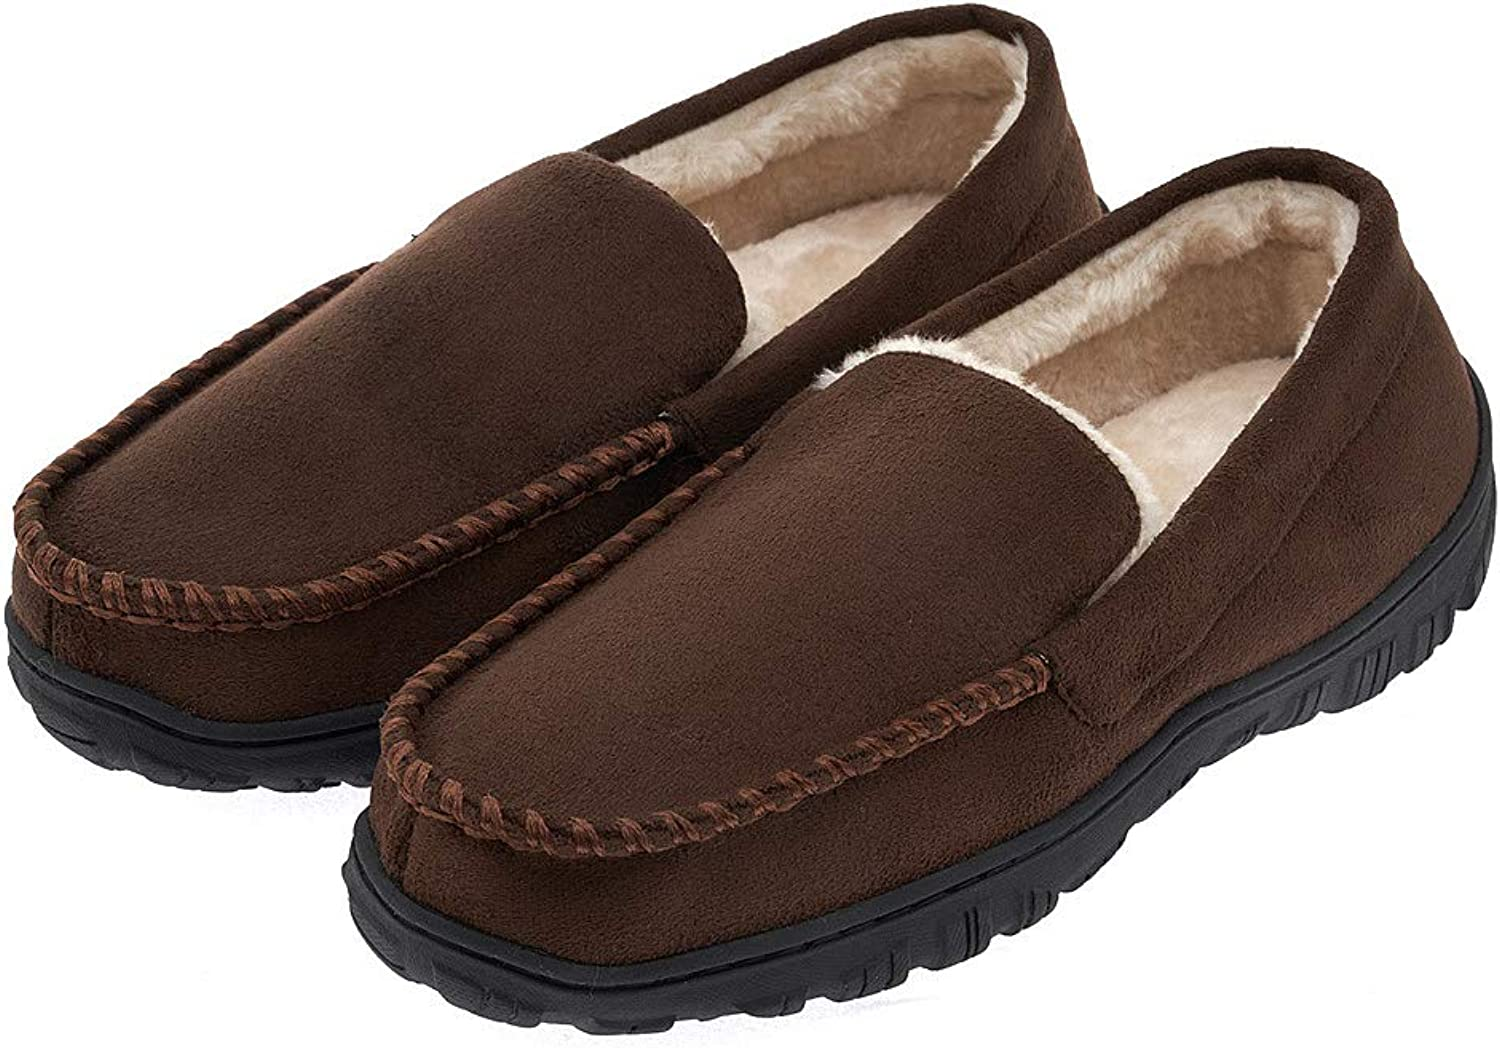 Festooning Men's Plush-Lined Anti-Slip Microsuede Moccasin Slippers shoes Rubber Sole Indoor Outdoor